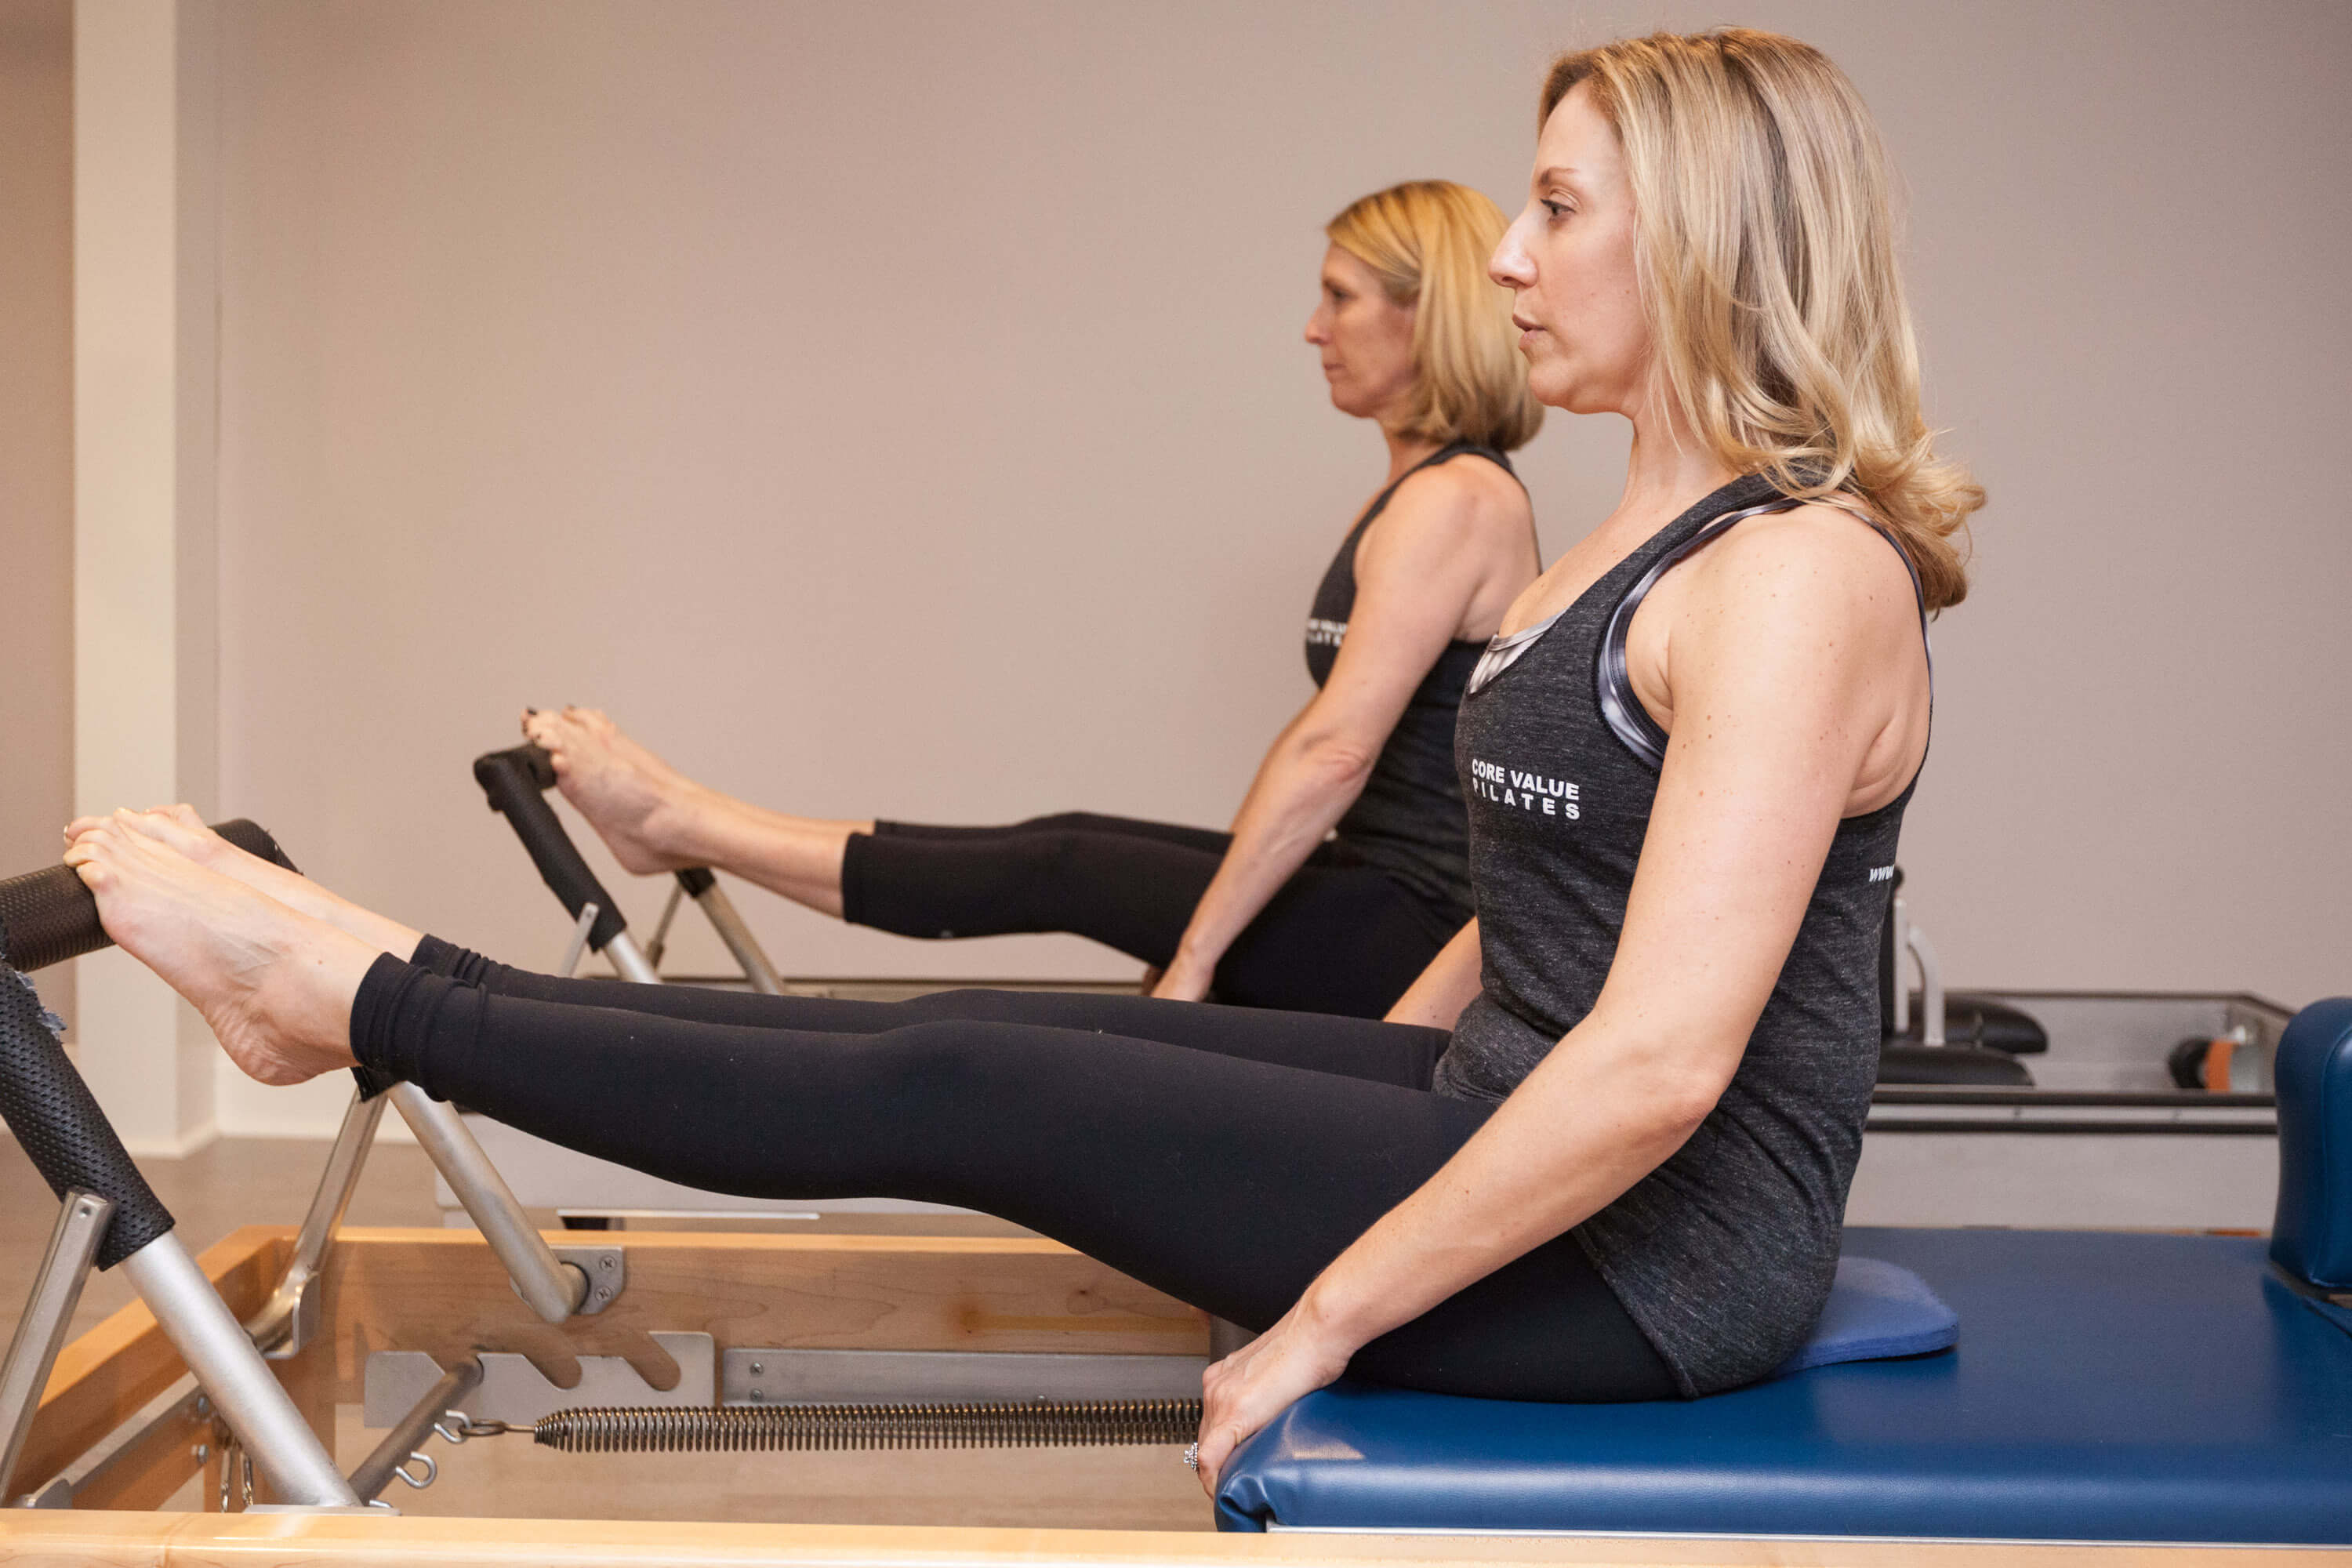 Core Value Pilates